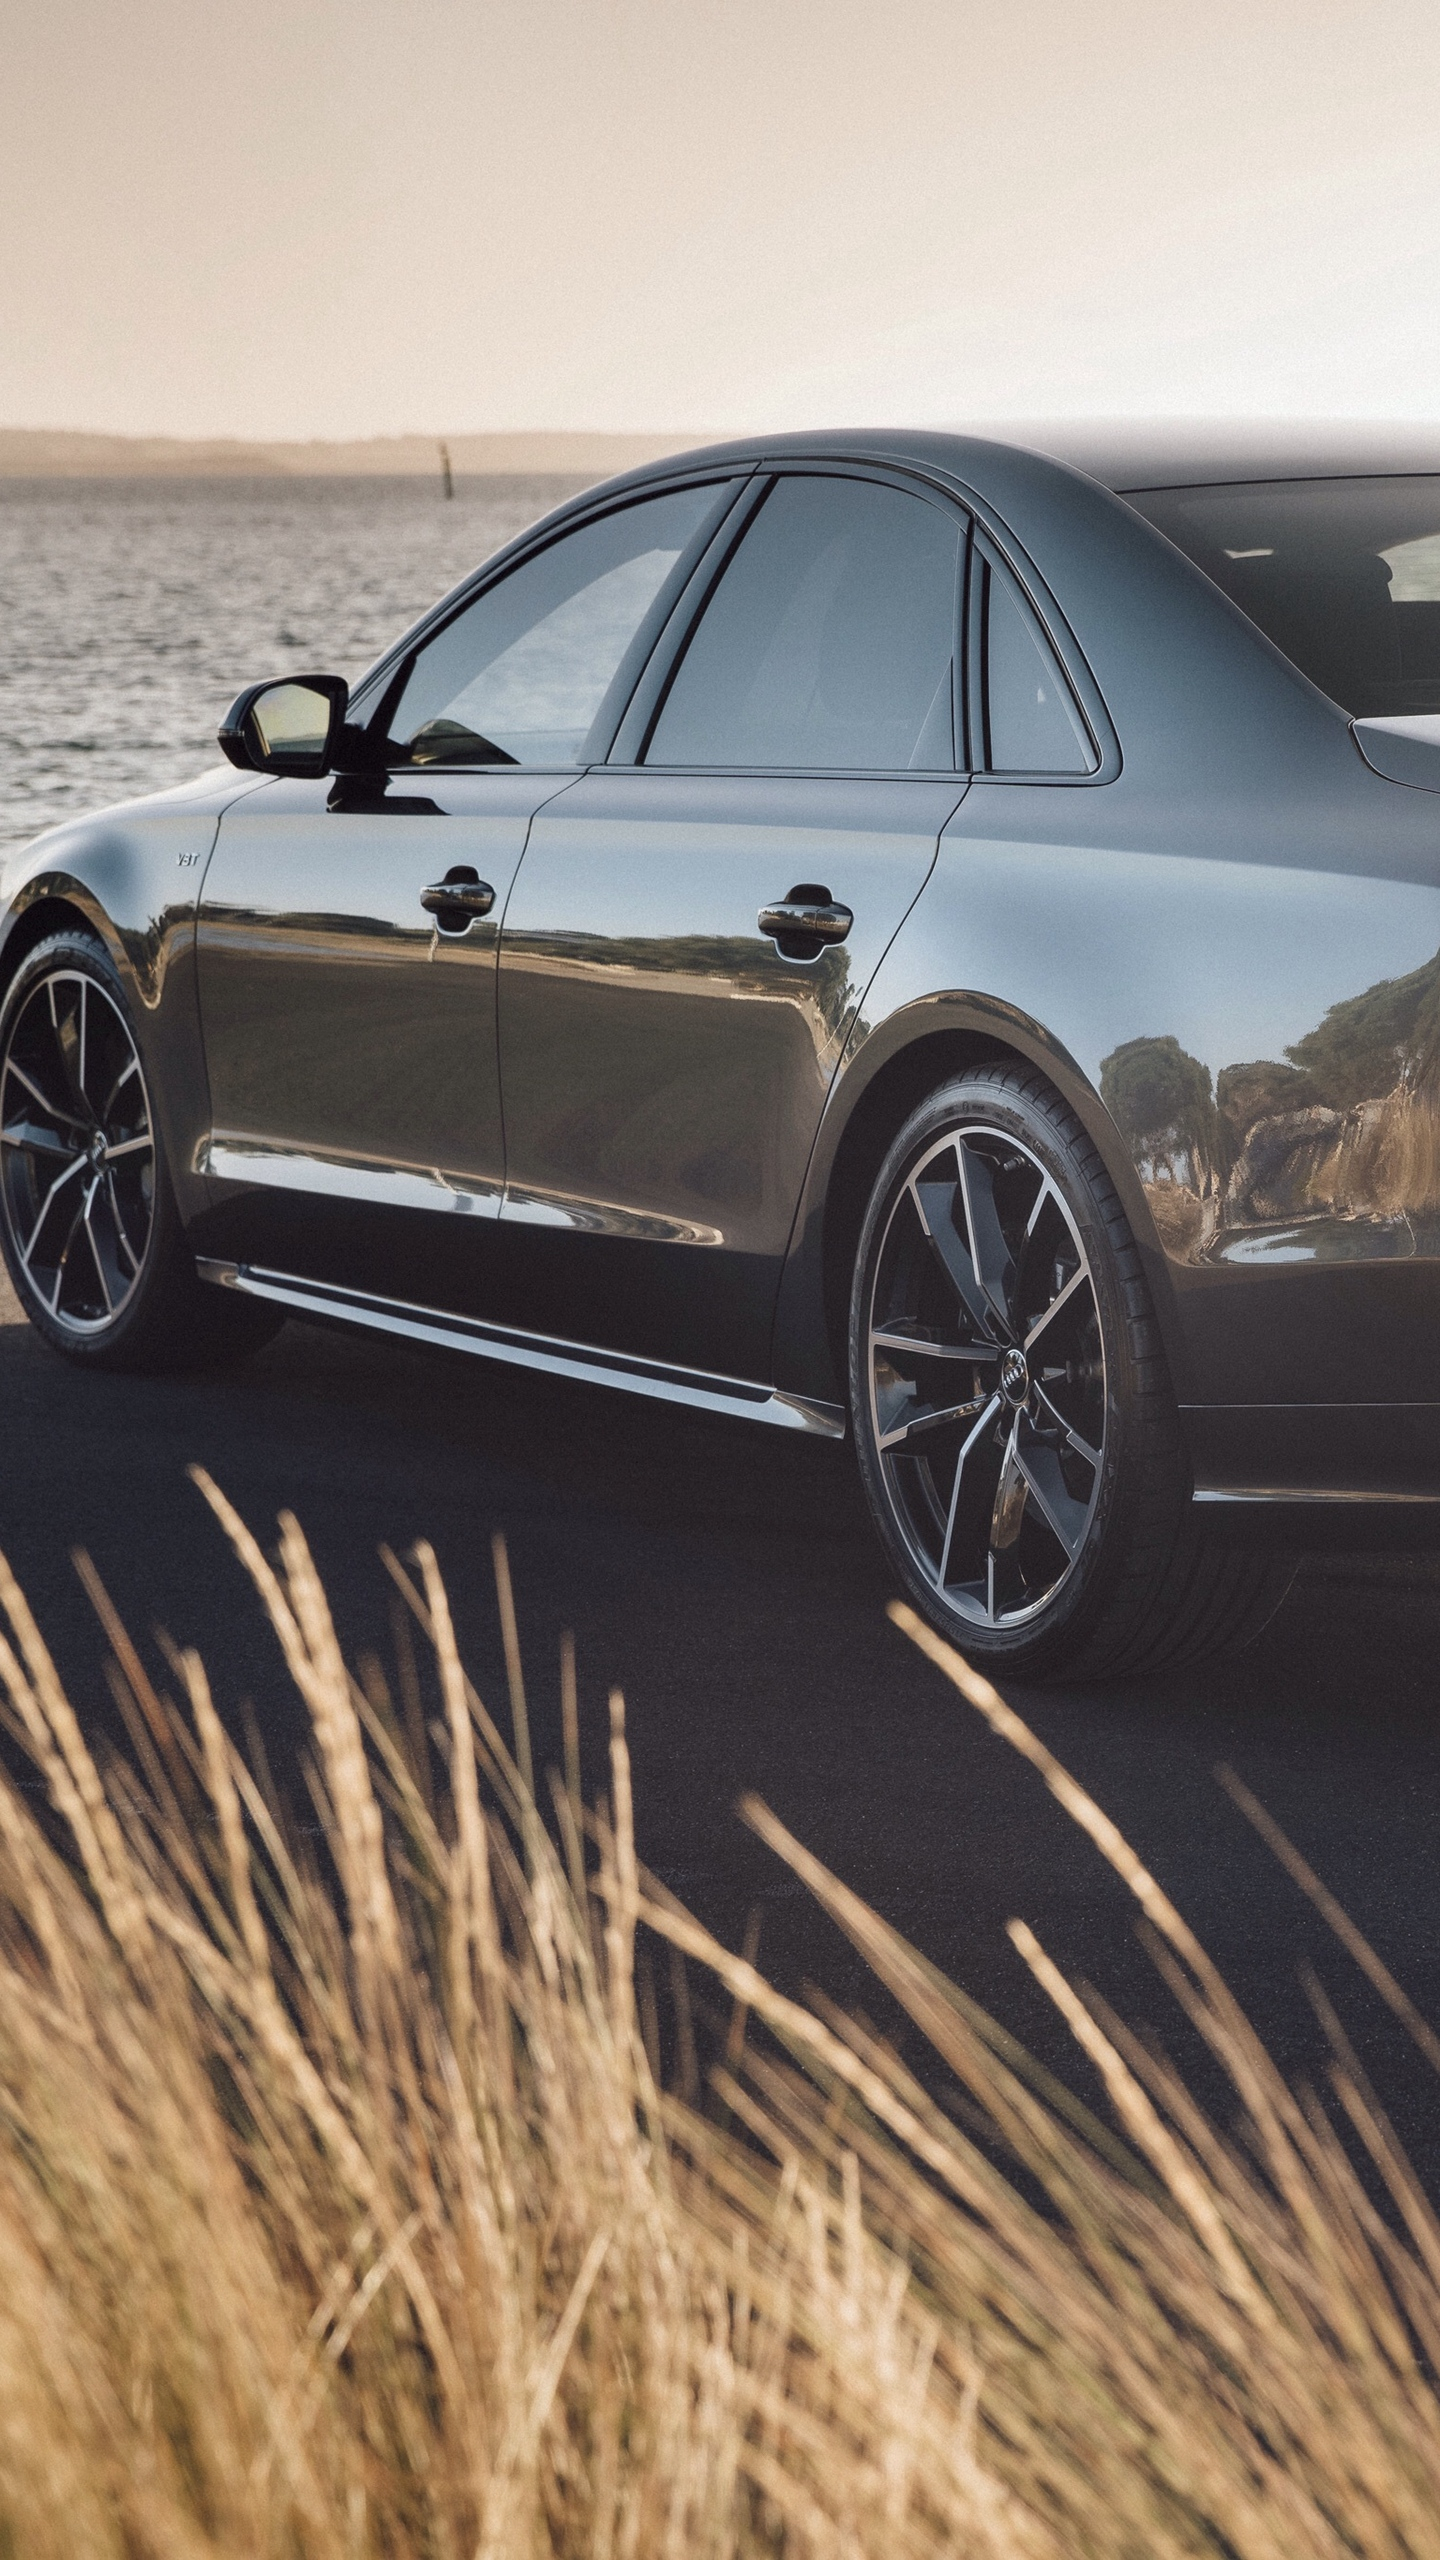 Download wallpaper 1440x2560 audi s8 rear view qhd samsung 1440x2560